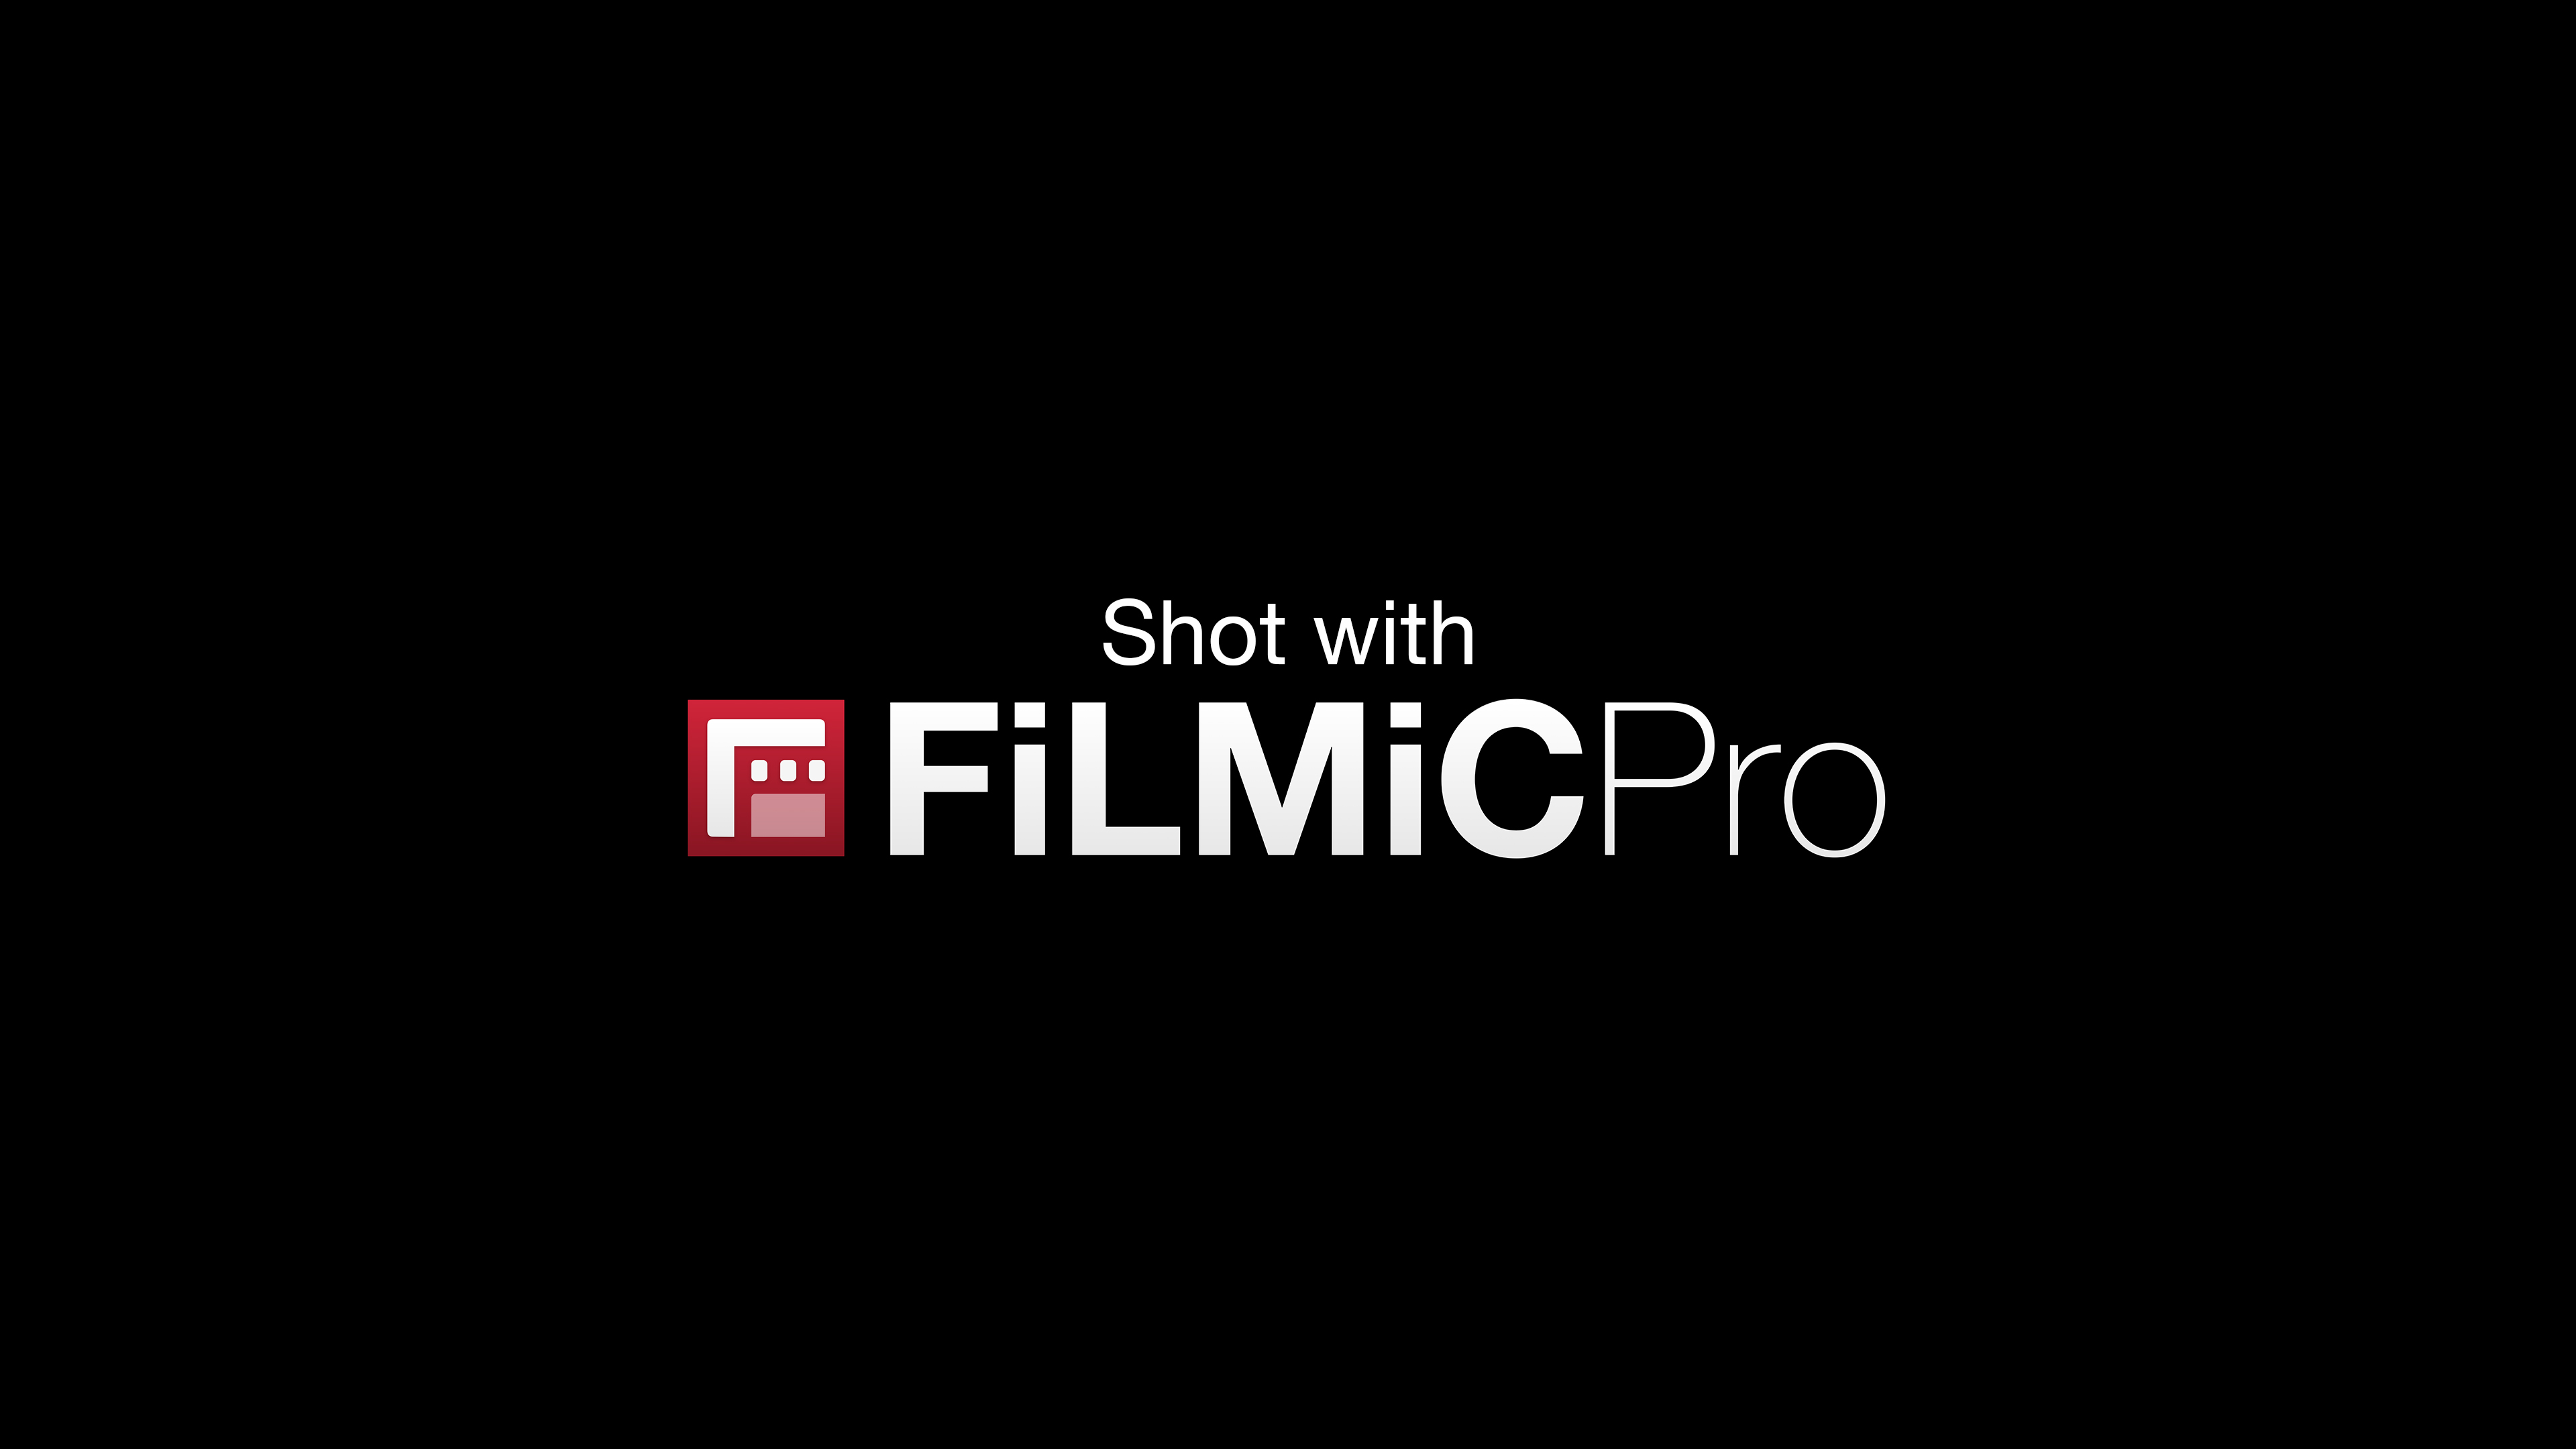 Right Click to Download 4K Bumper - Filmic Pro Mobile Video | Filmic